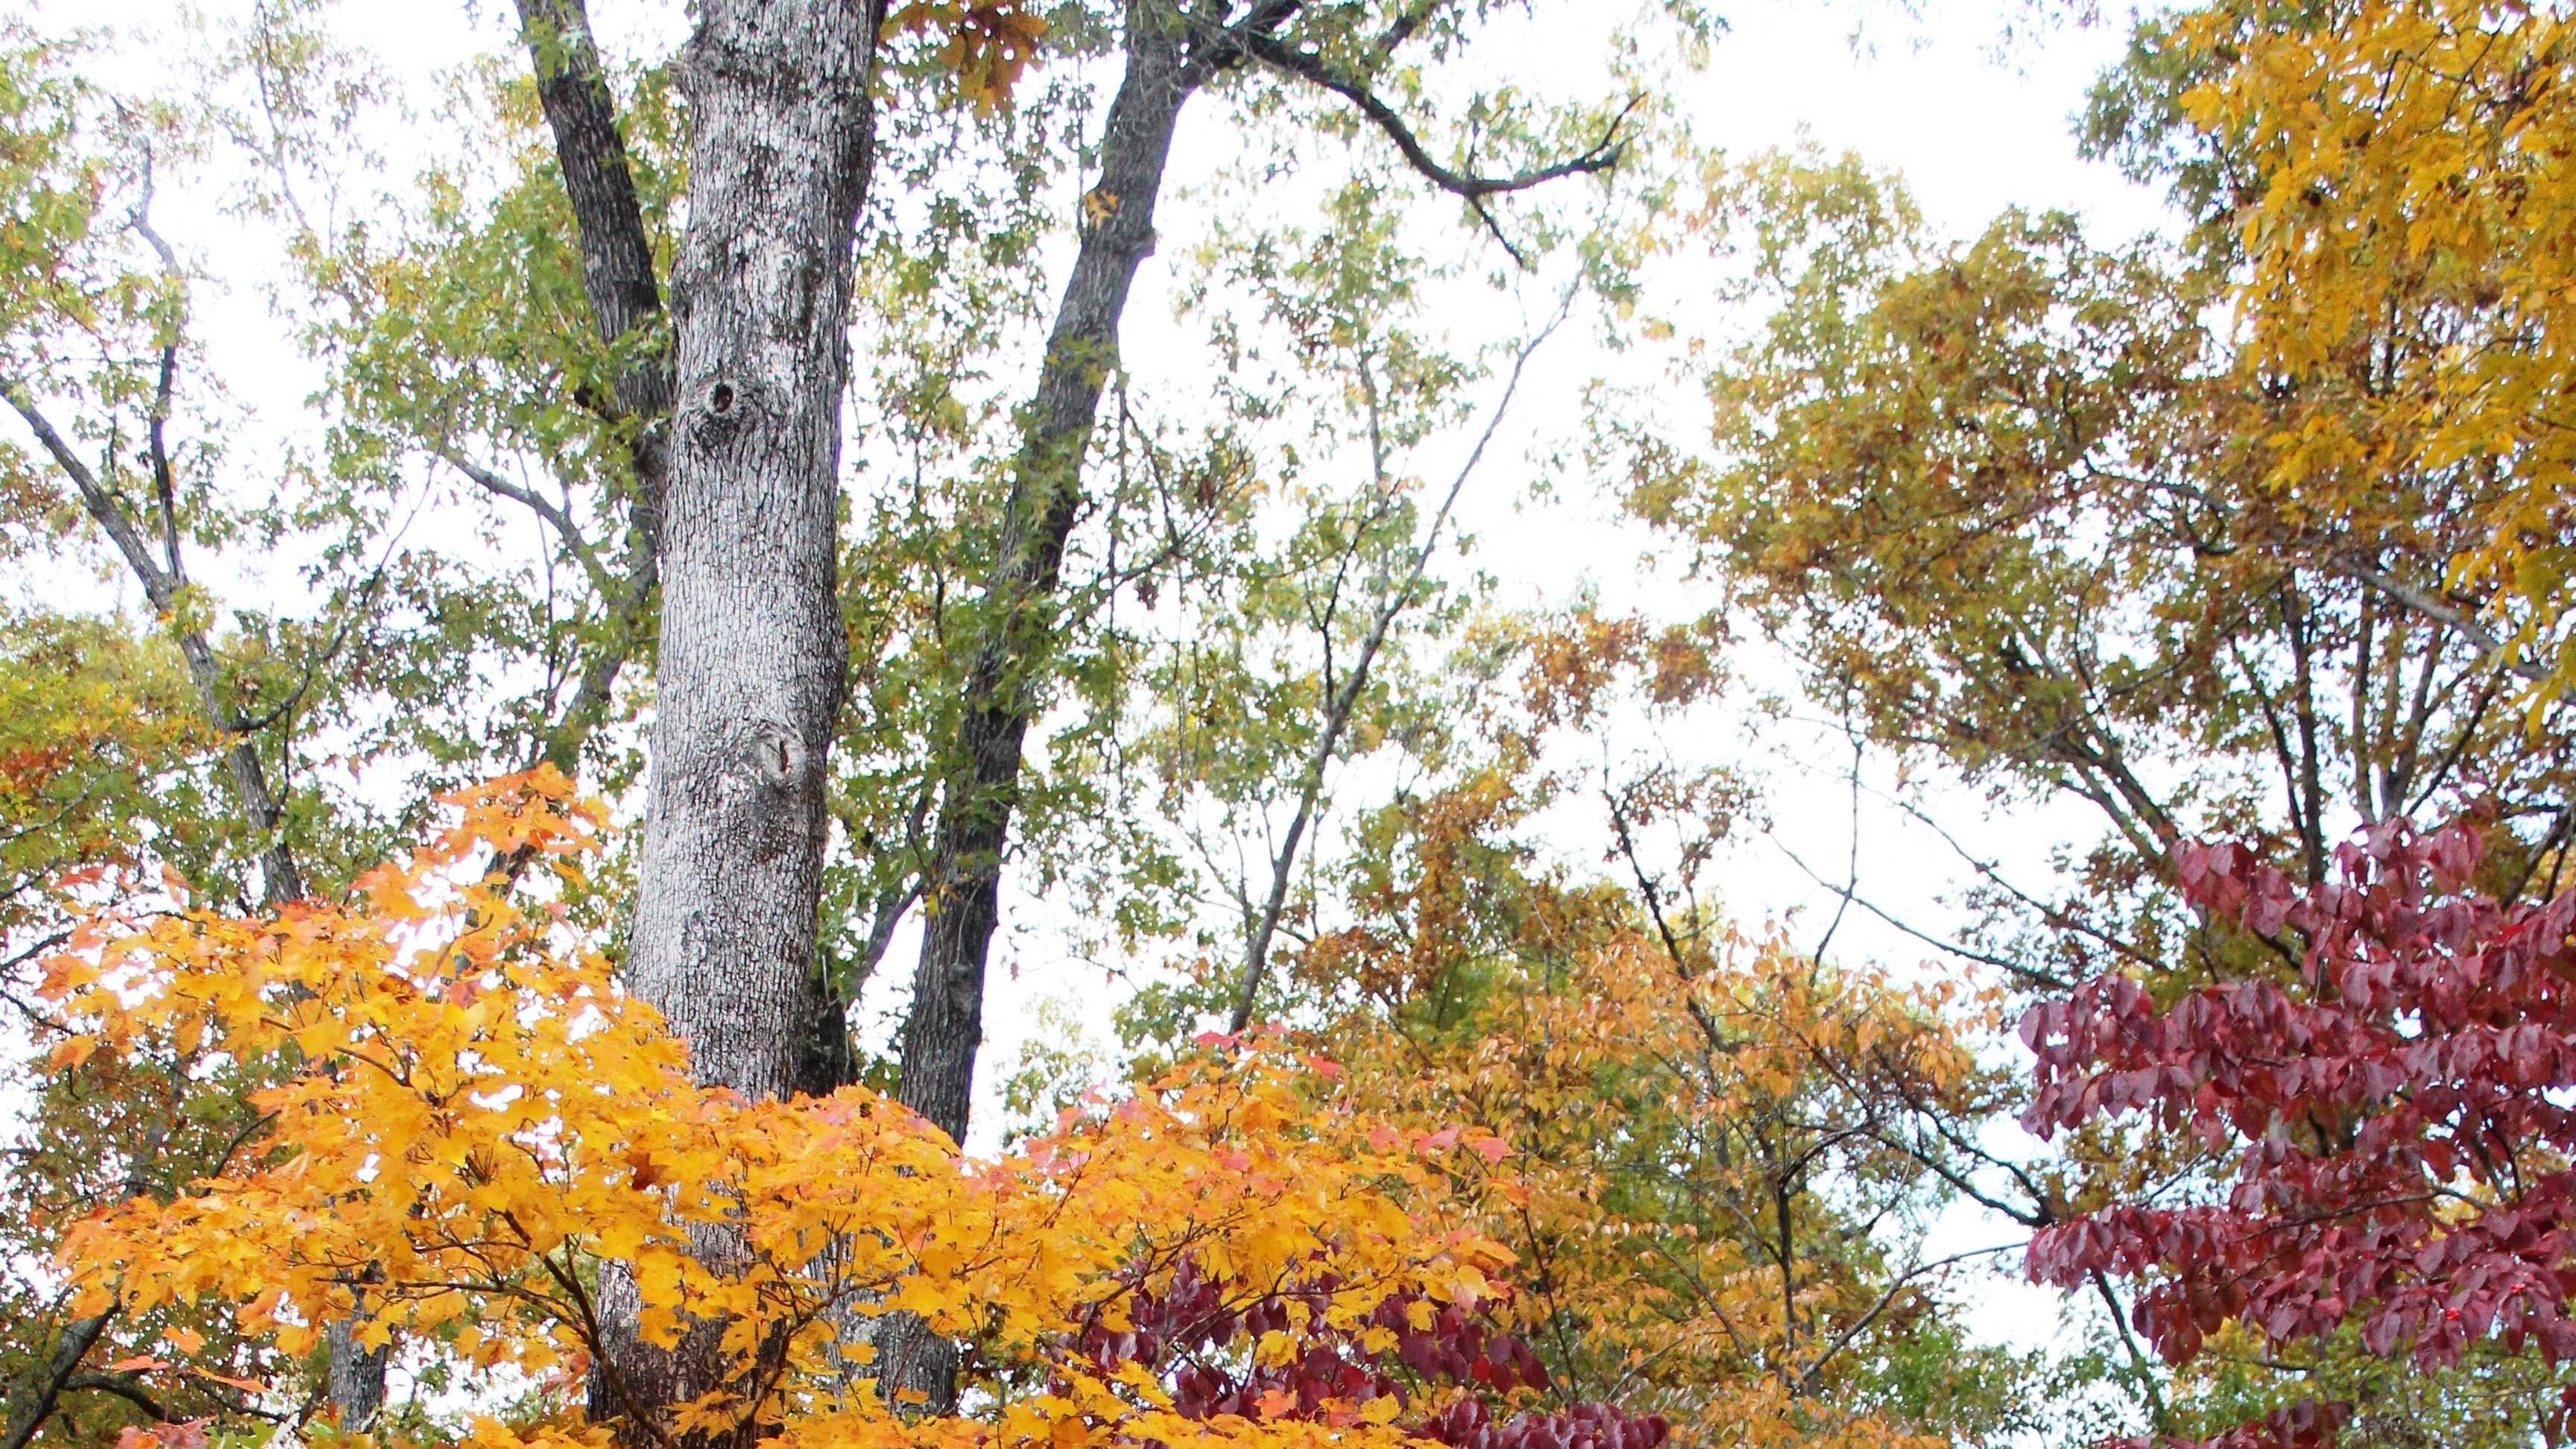 These beautiful trees were seen in Withrow Springs State Park near Huntsville October 28, 2013. Suella Bratton